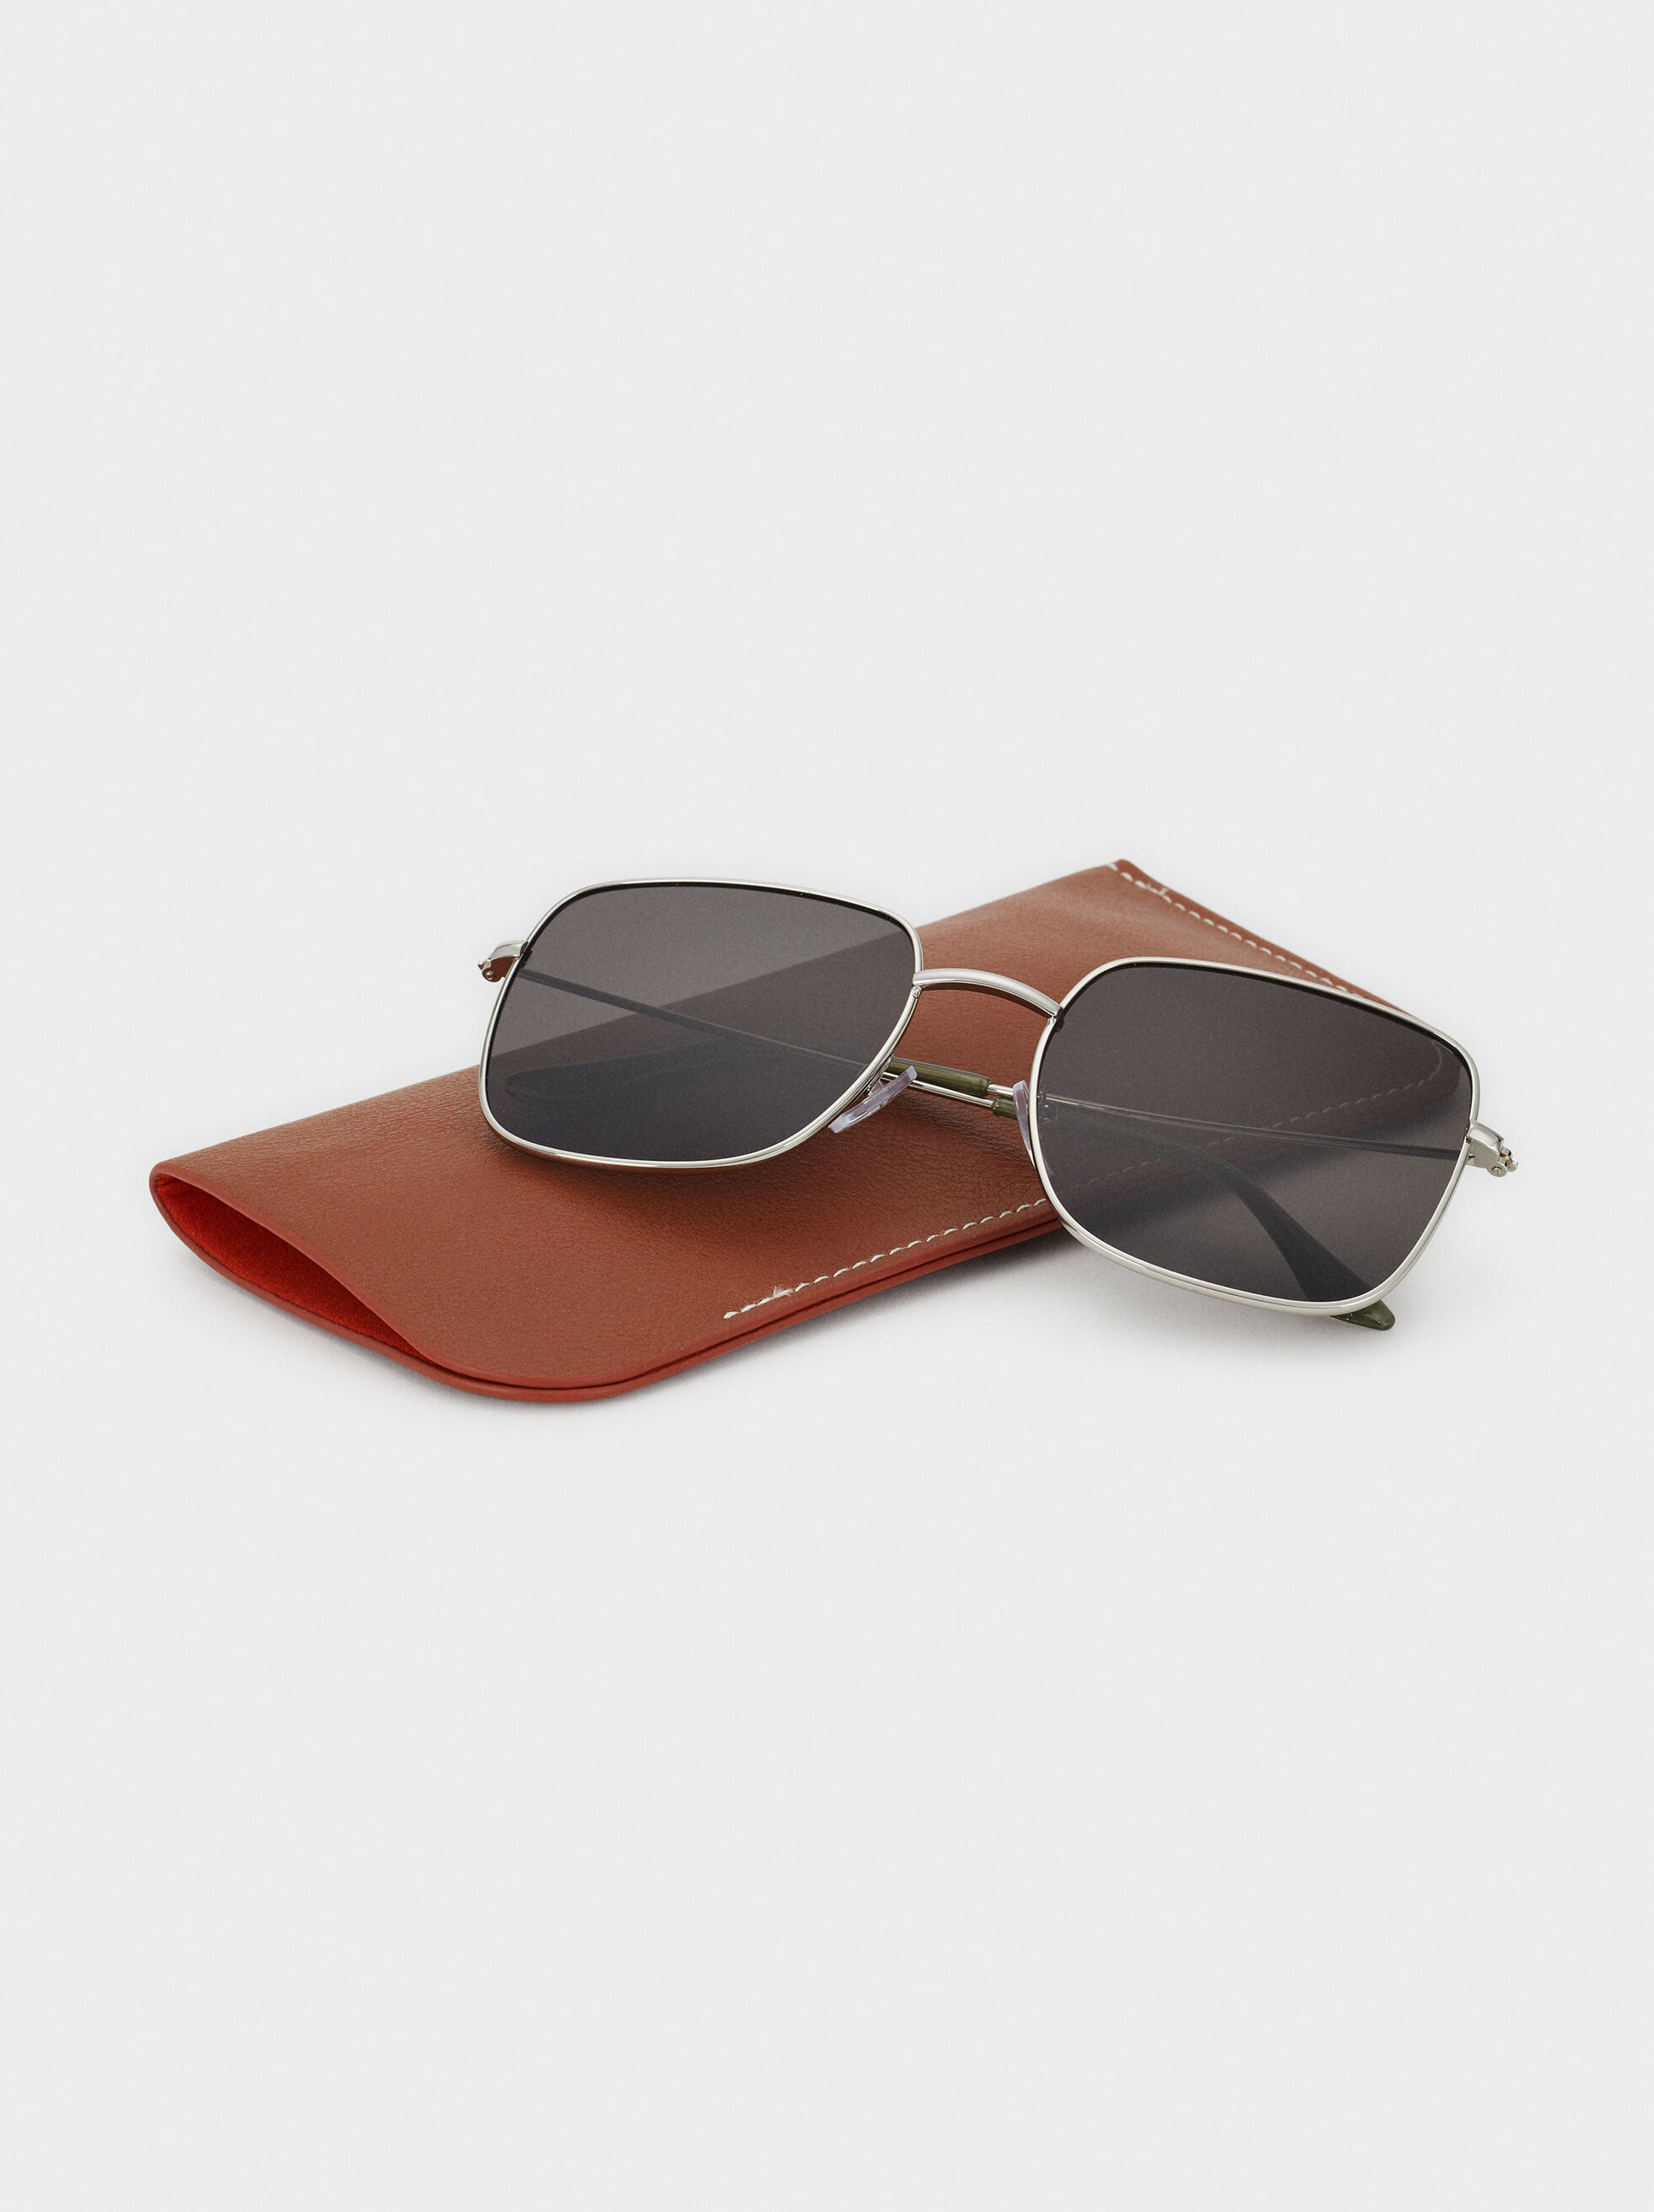 Square-Cut Sunglasses, Silver, hi-res